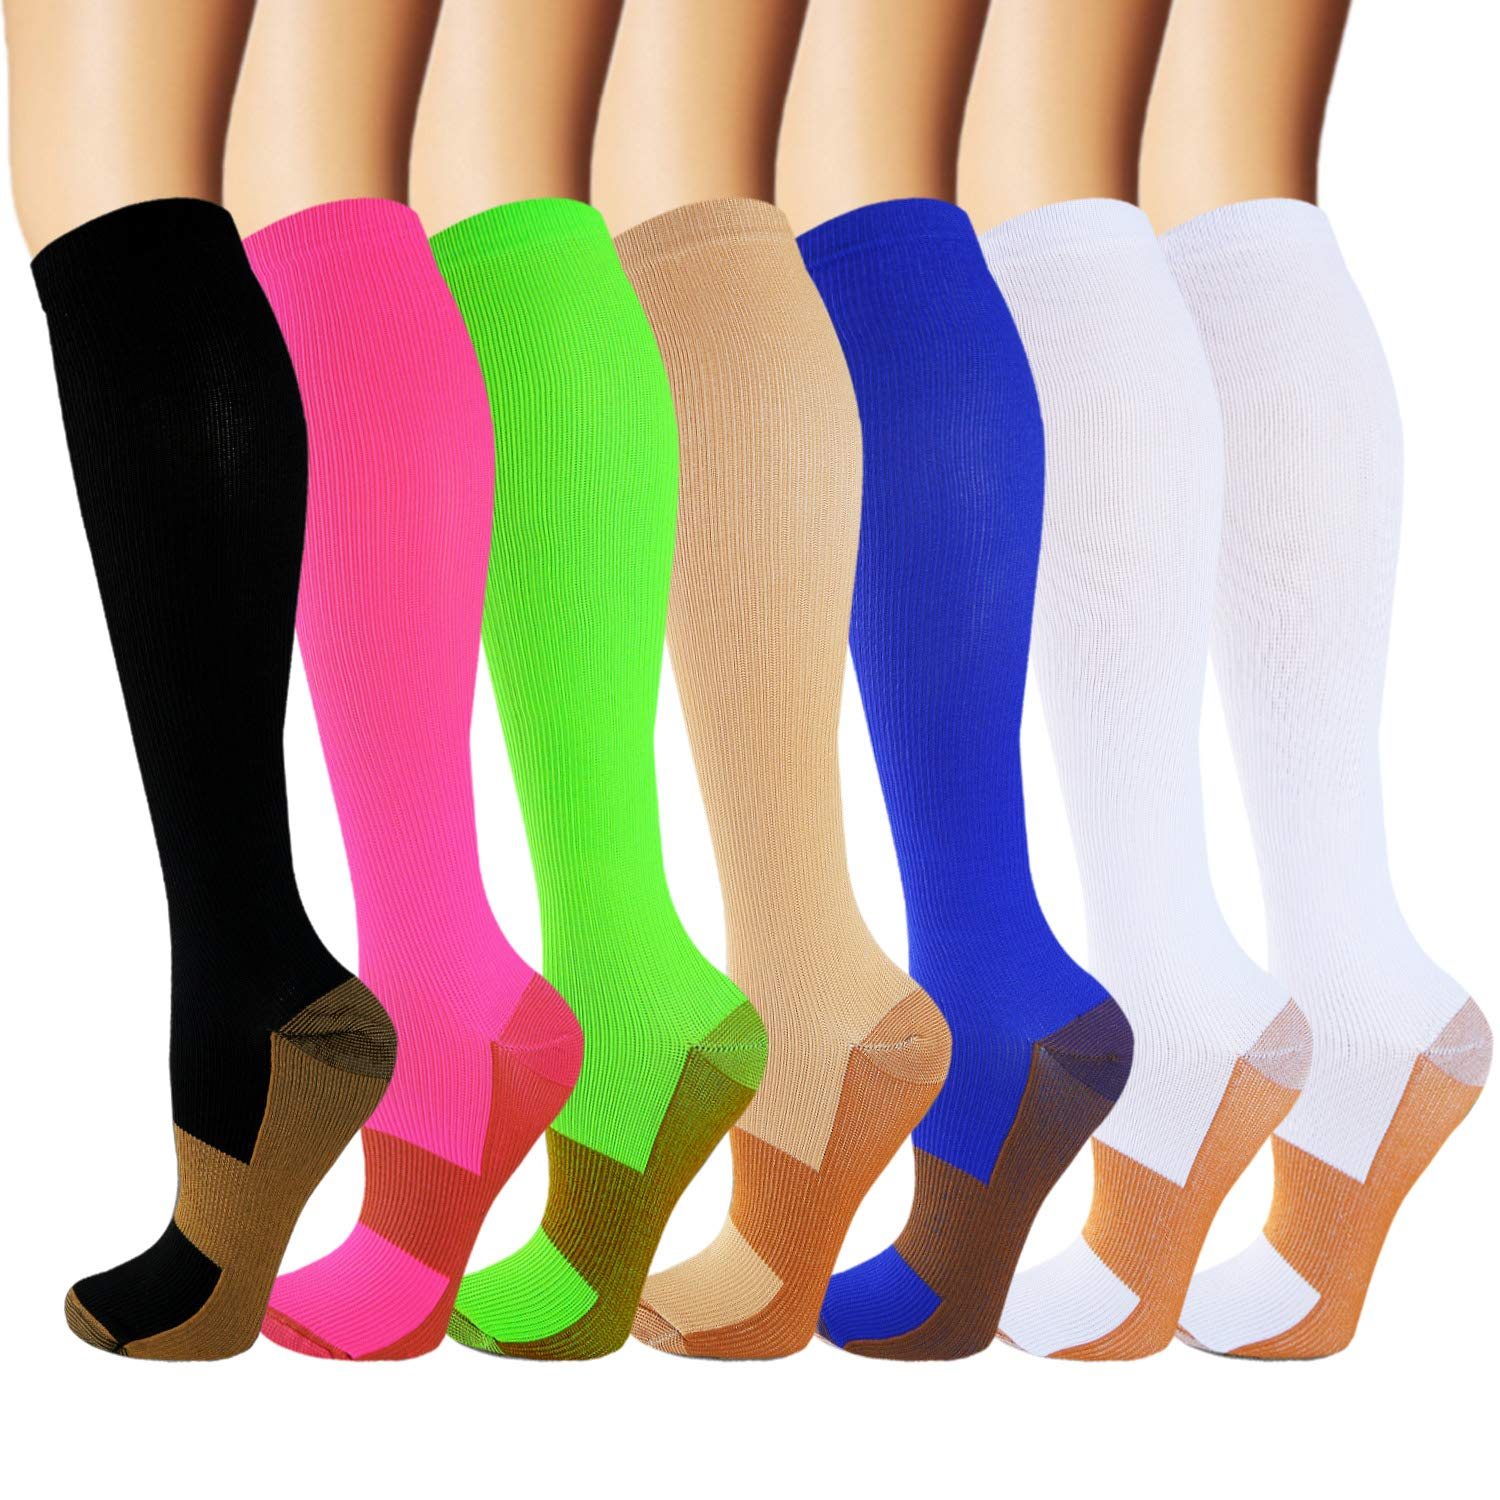 Iseasoo 7 Pack Copper Knee High Compression Socks for Men & Women - Best for Running,Athletic,Medical,Pregnancy and Travel -15-20mmHg(S/M,Multicoloured) by Iseasoo